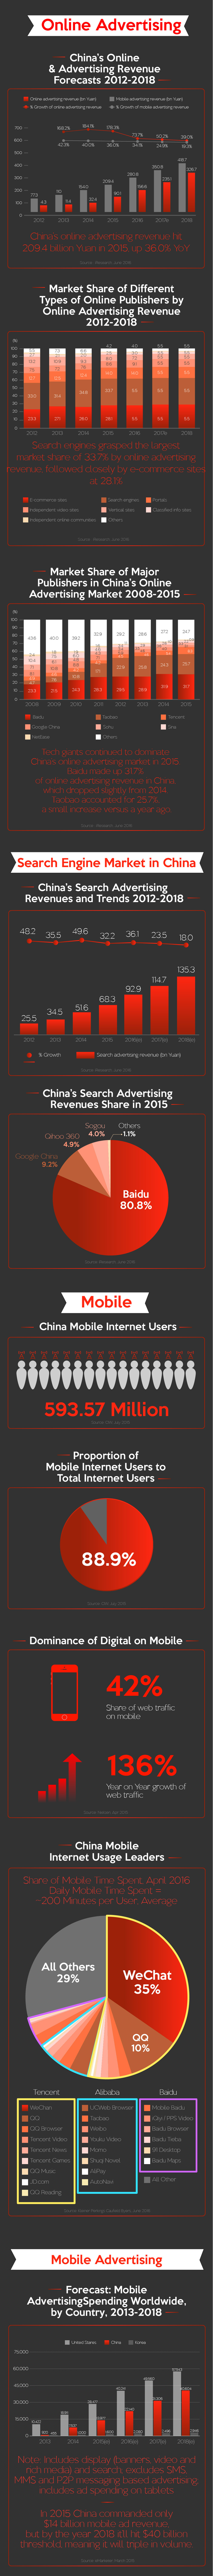 china-infographic-en-02